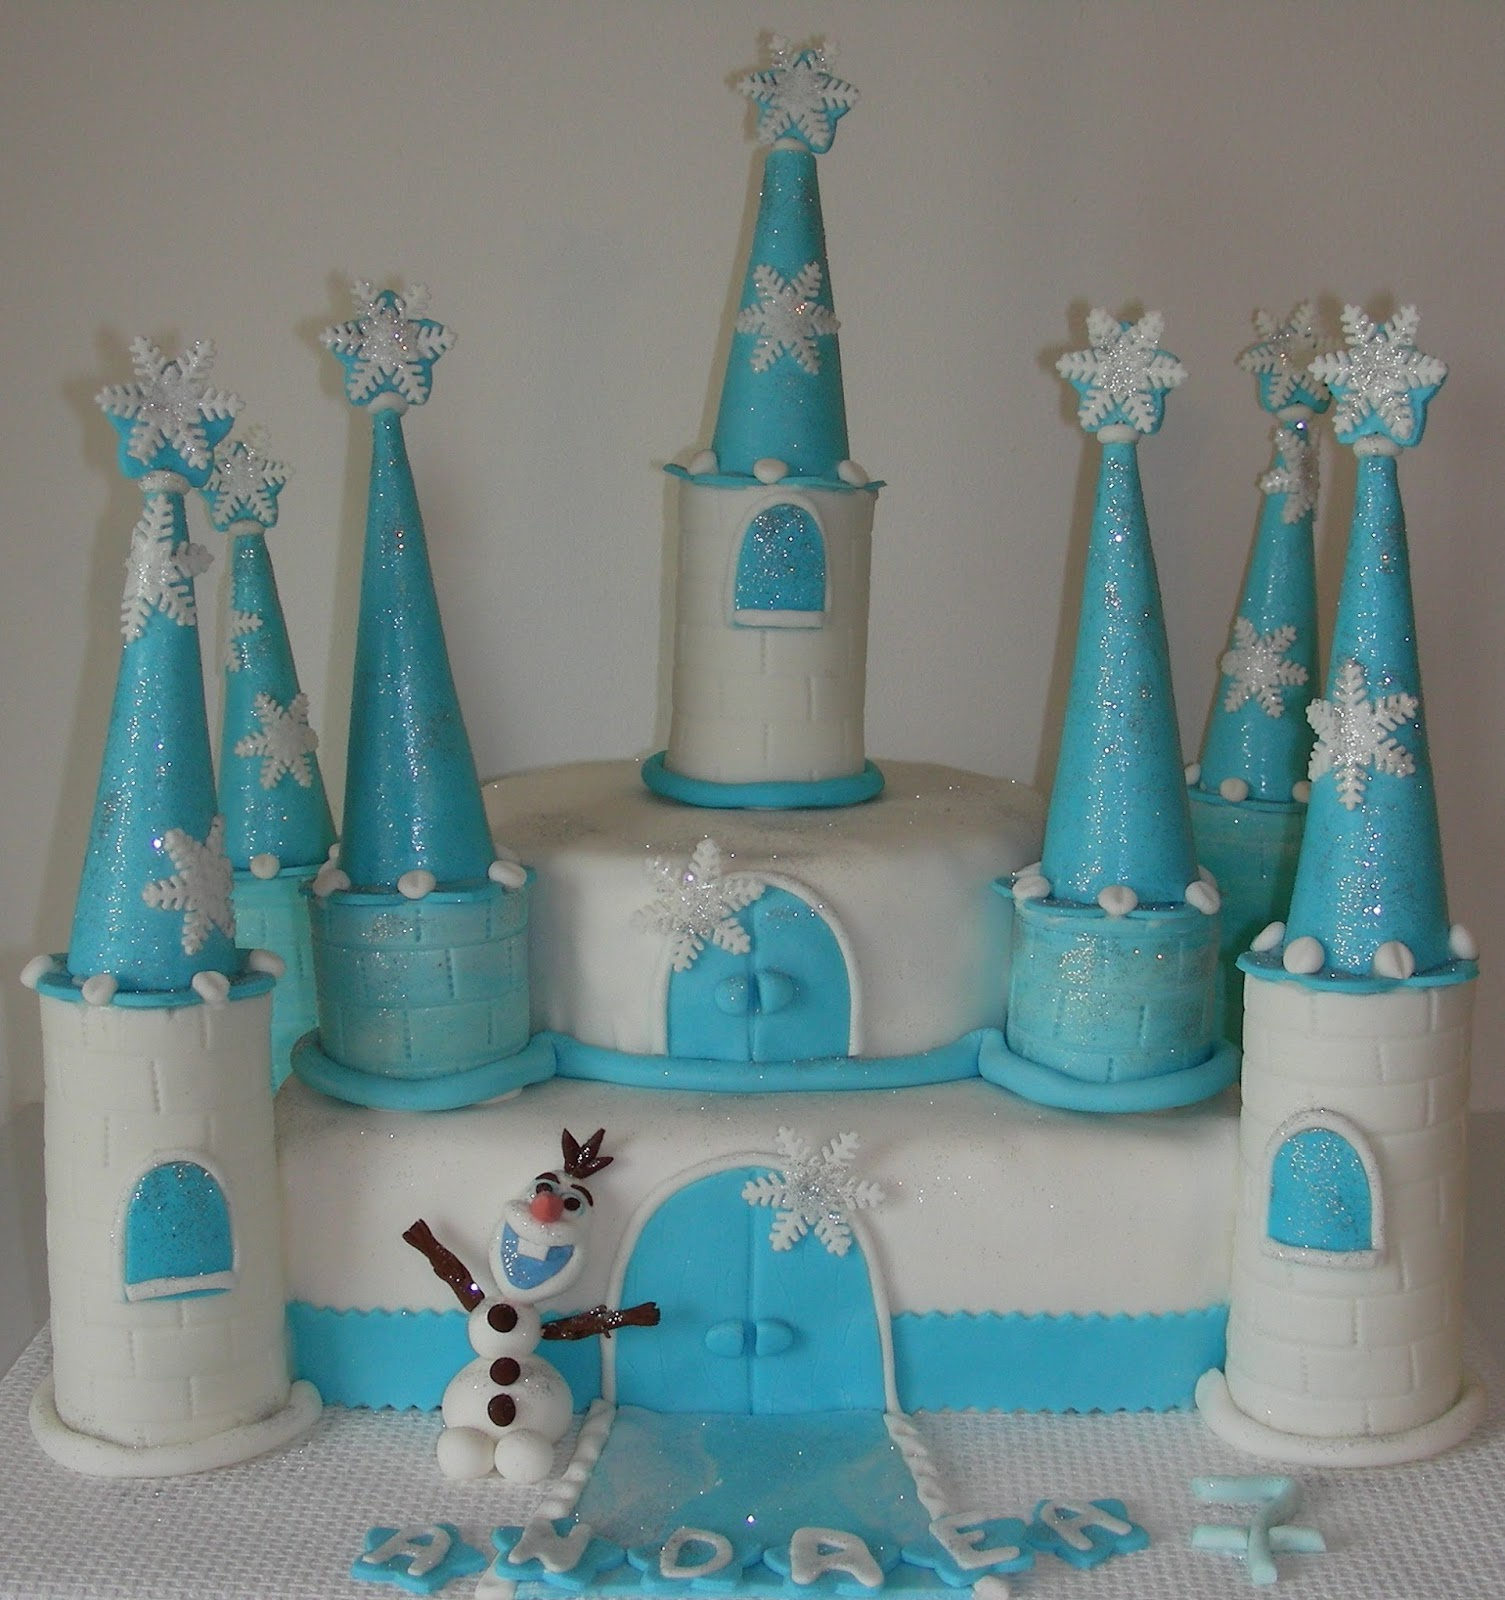 gateau chateau reine des neiges recette home baking for you blog photo. Black Bedroom Furniture Sets. Home Design Ideas